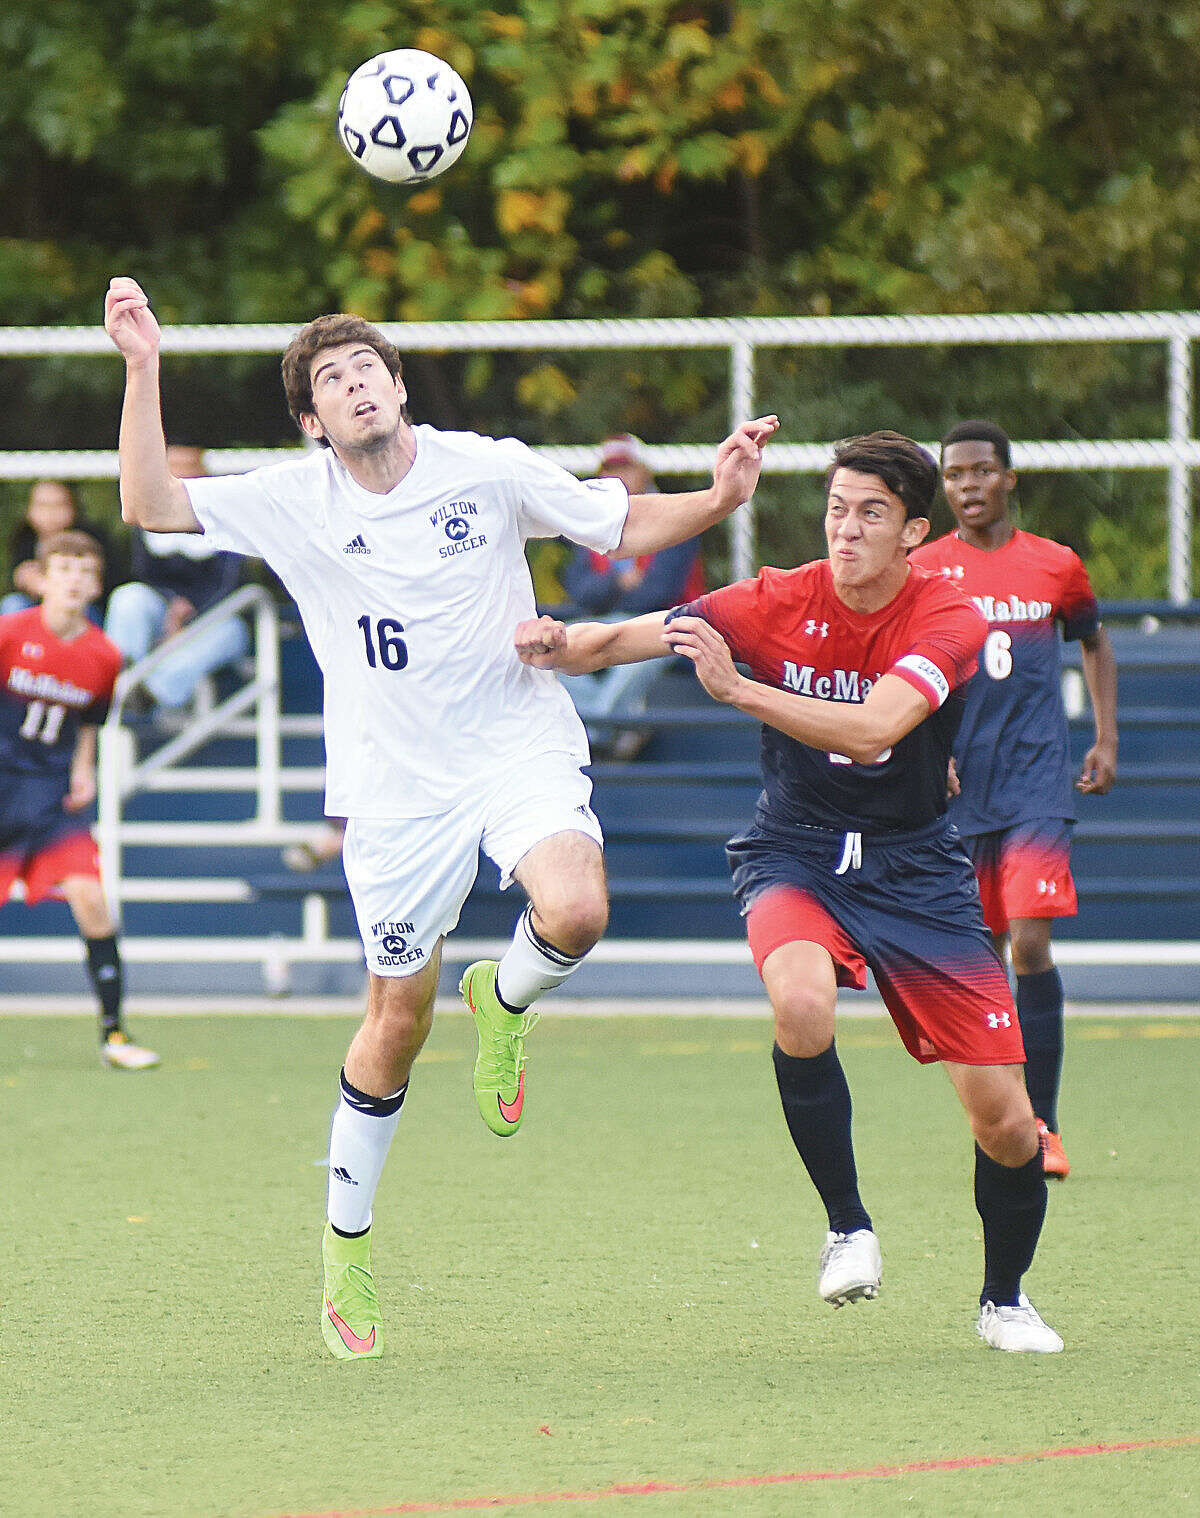 Hour photo/John Nash - Wilton's Bryan Perlee, left, and Brien McMahon's Helmuth Iraheta battle for a ball during Wednesday's FCIAC boys soccer game in Wilton.